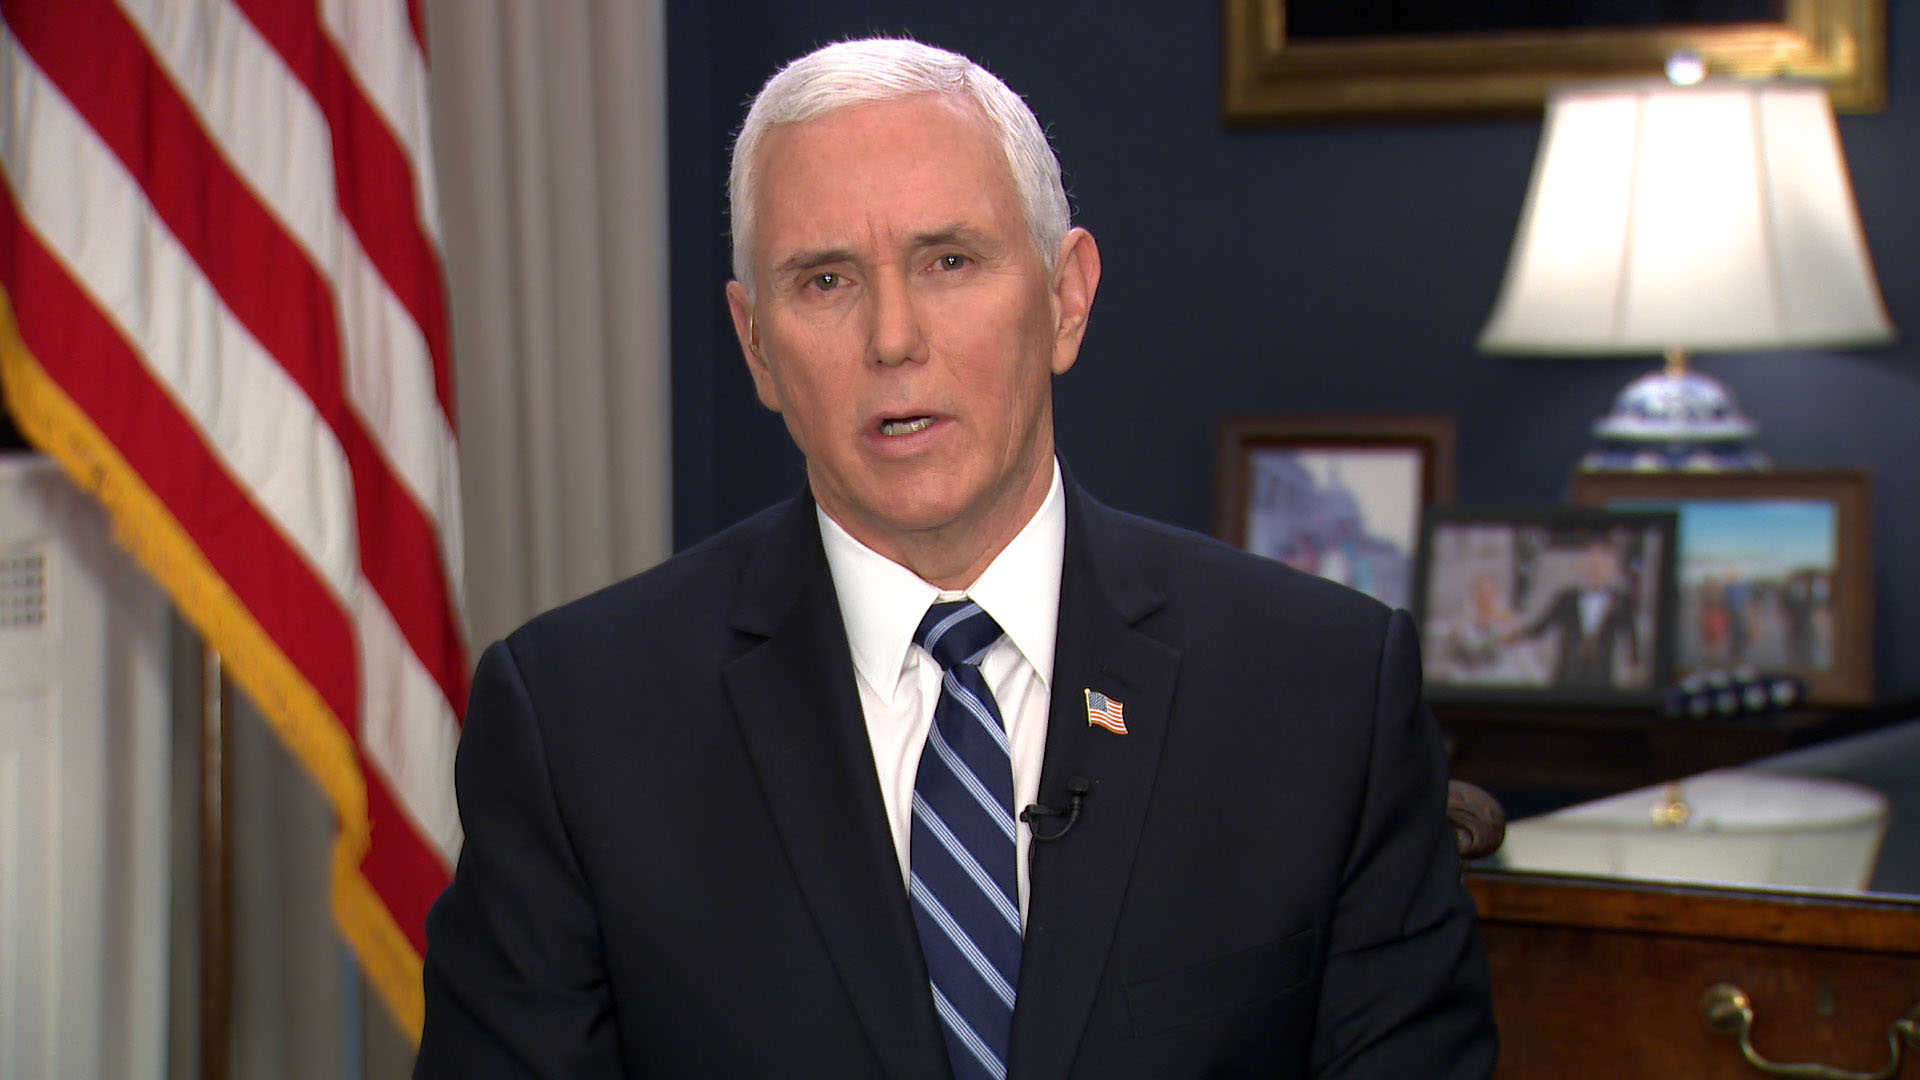 Vice President Mike Pence speaks to CNN on Thursday.